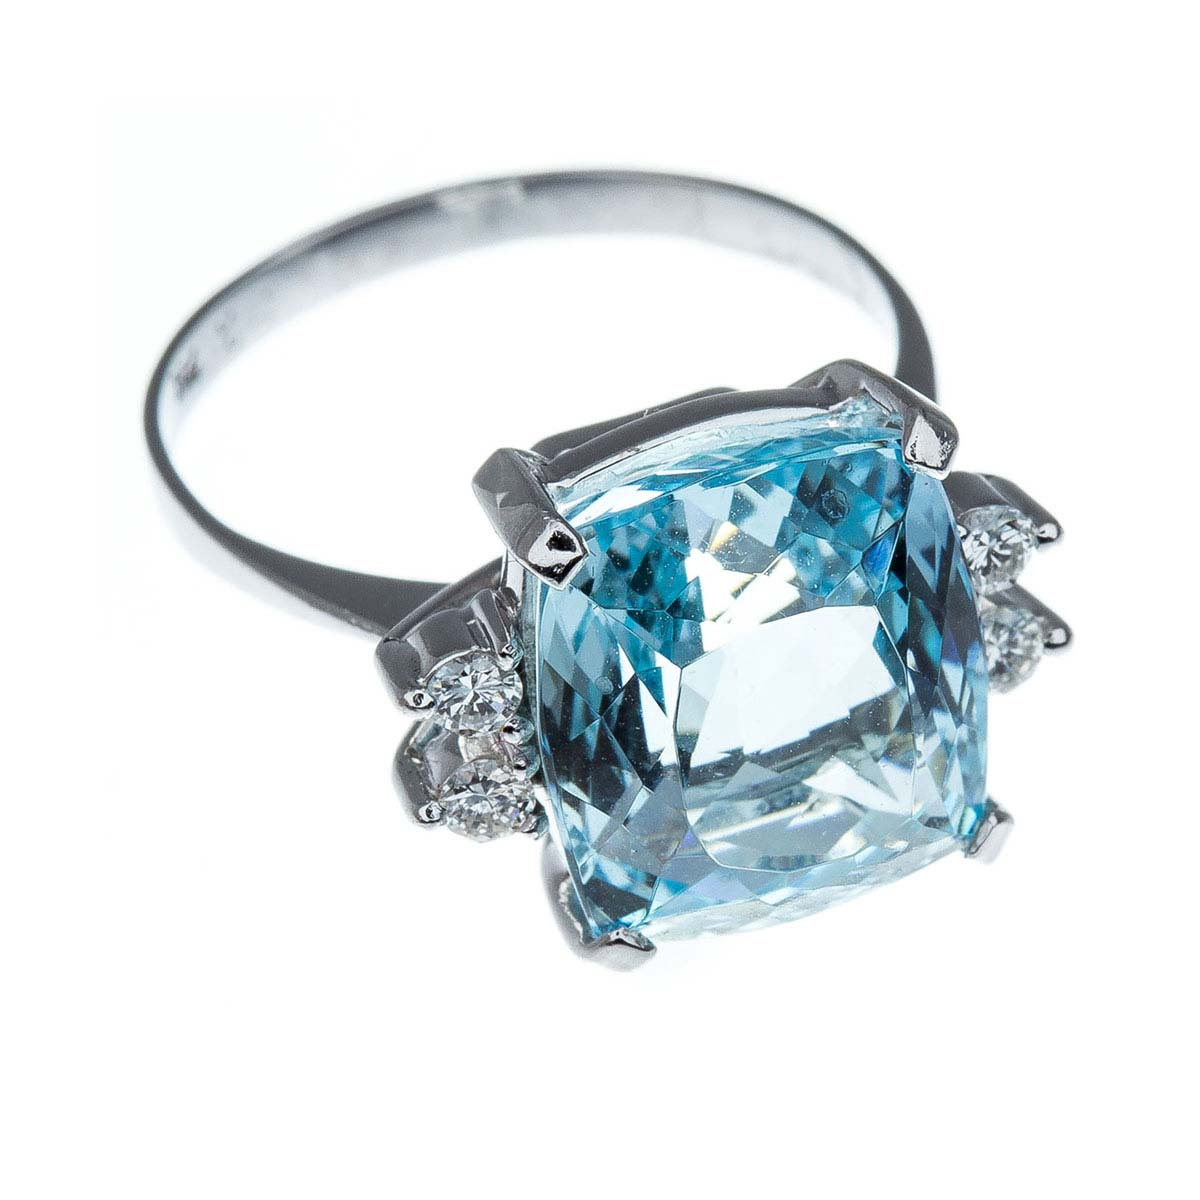 18ct white gold, aquamarine & diamond dress ring